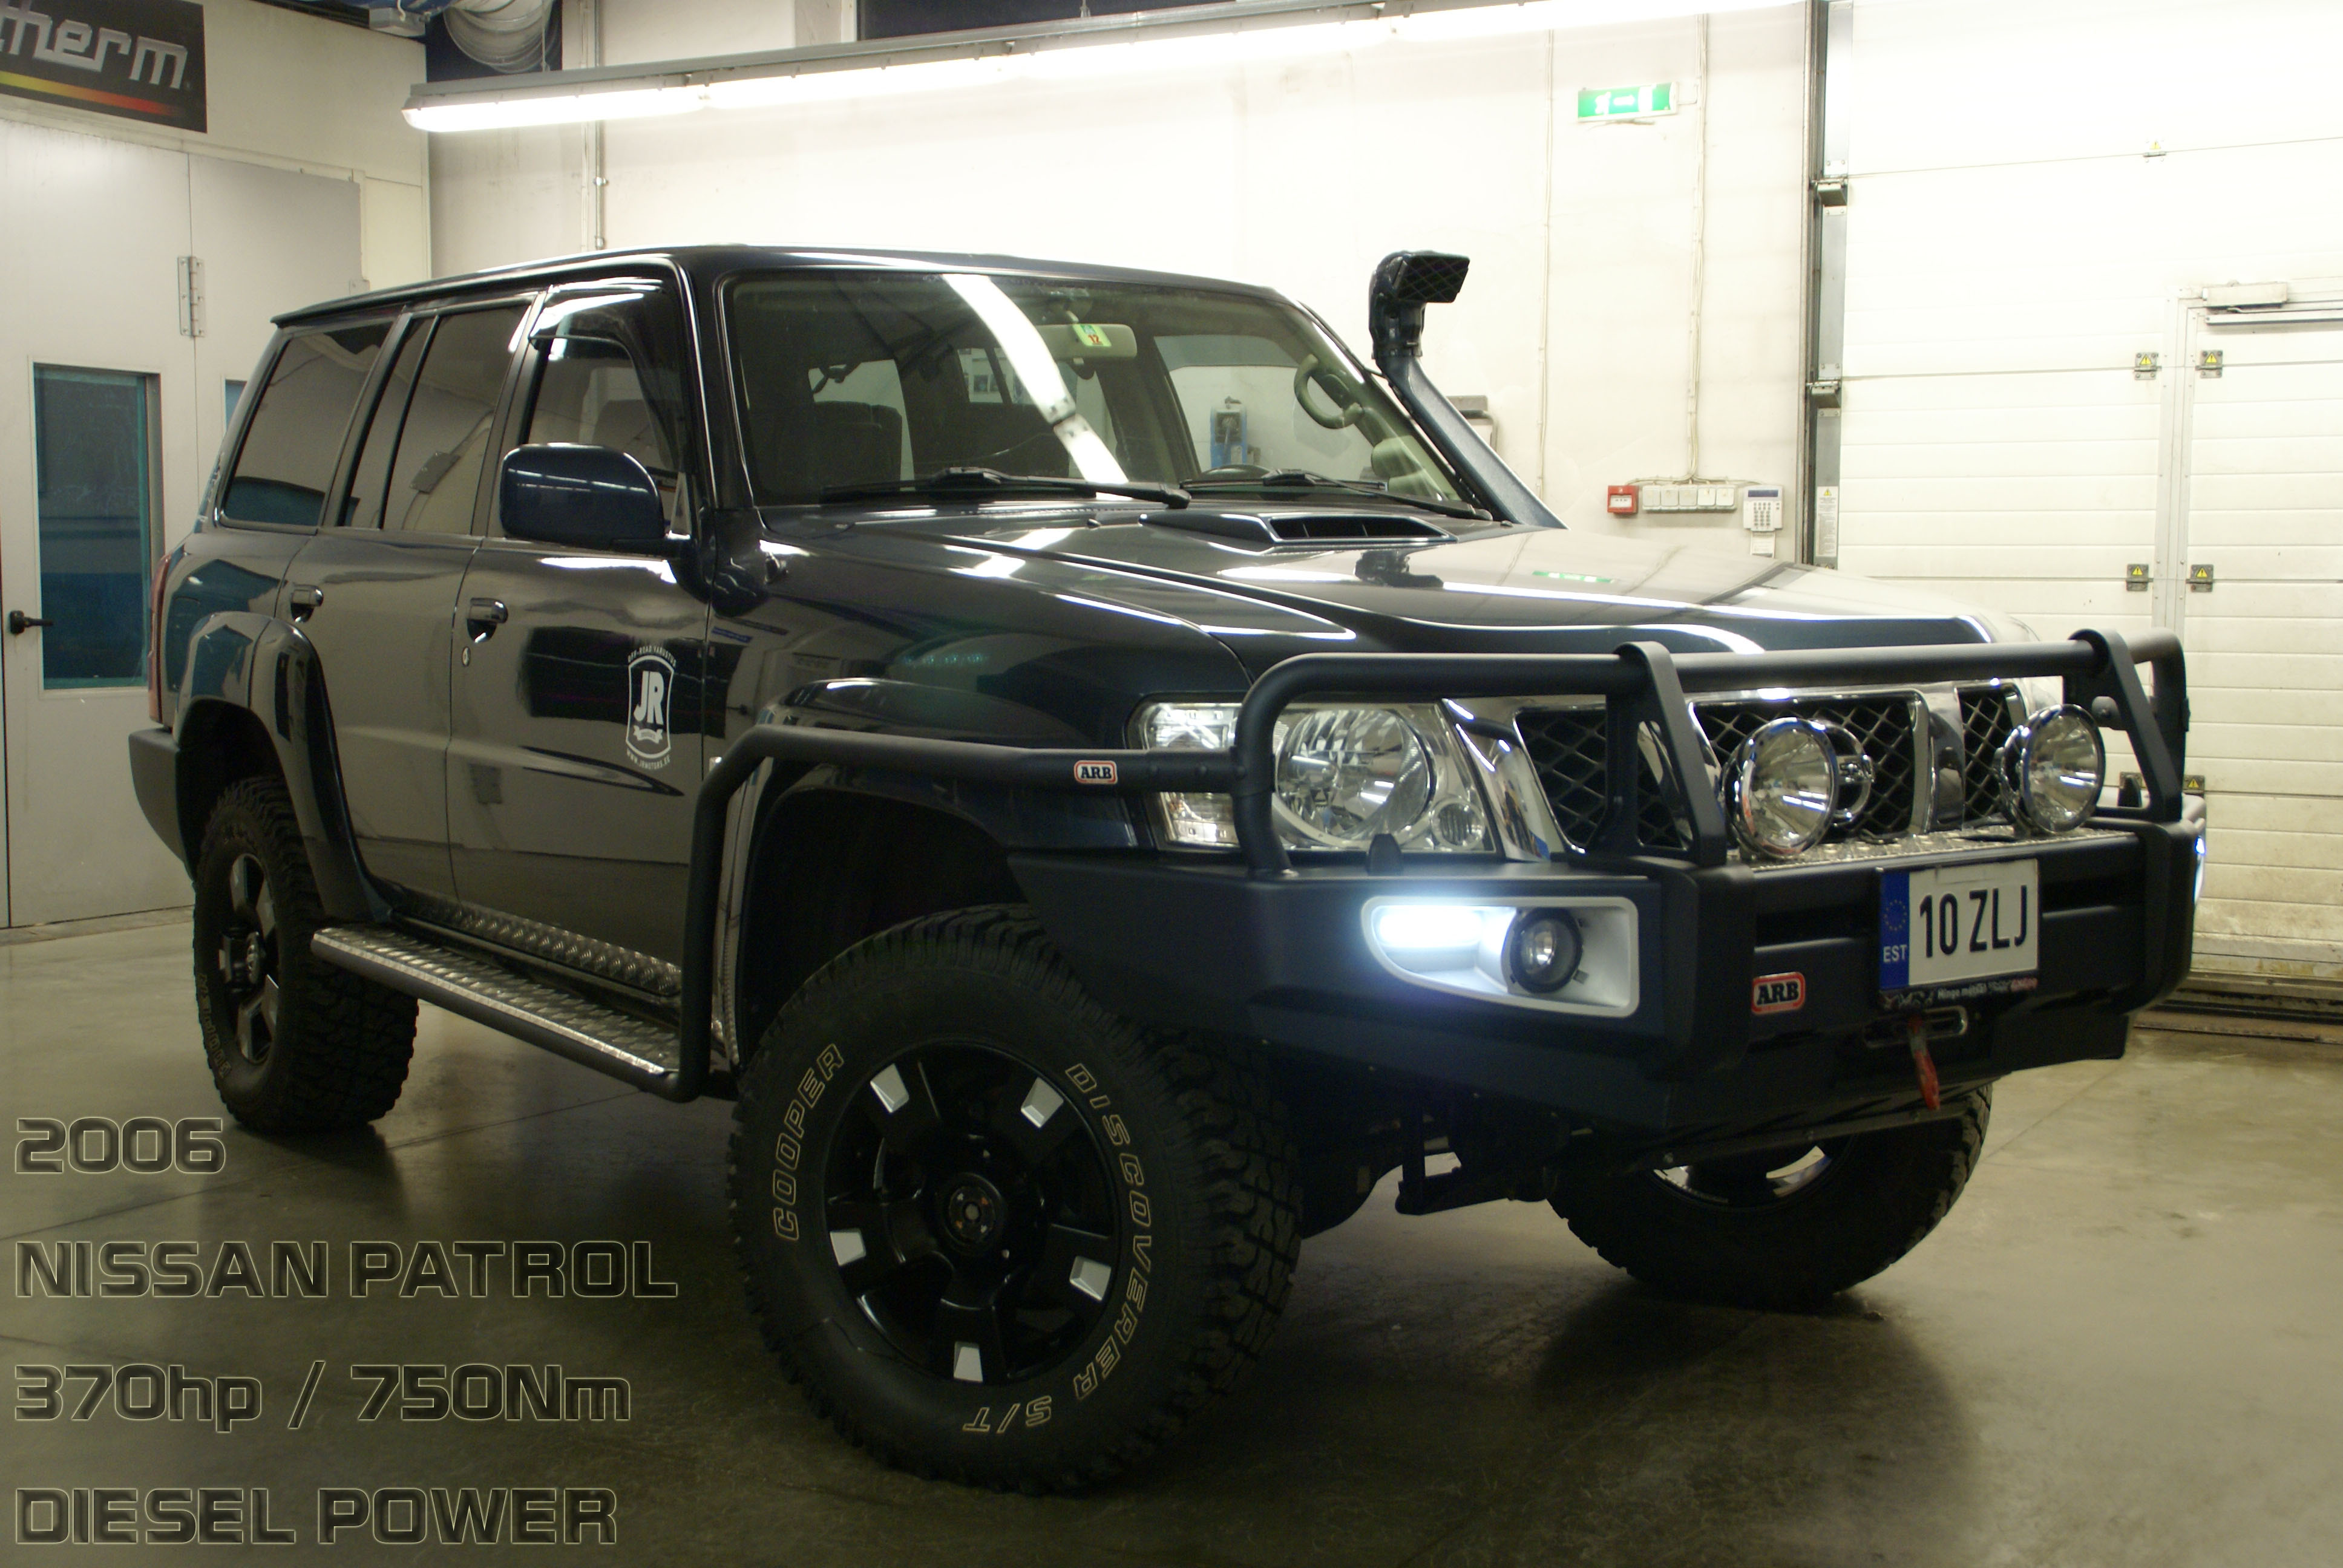 Nissan Patrol with BMW M57 engine and ARB products